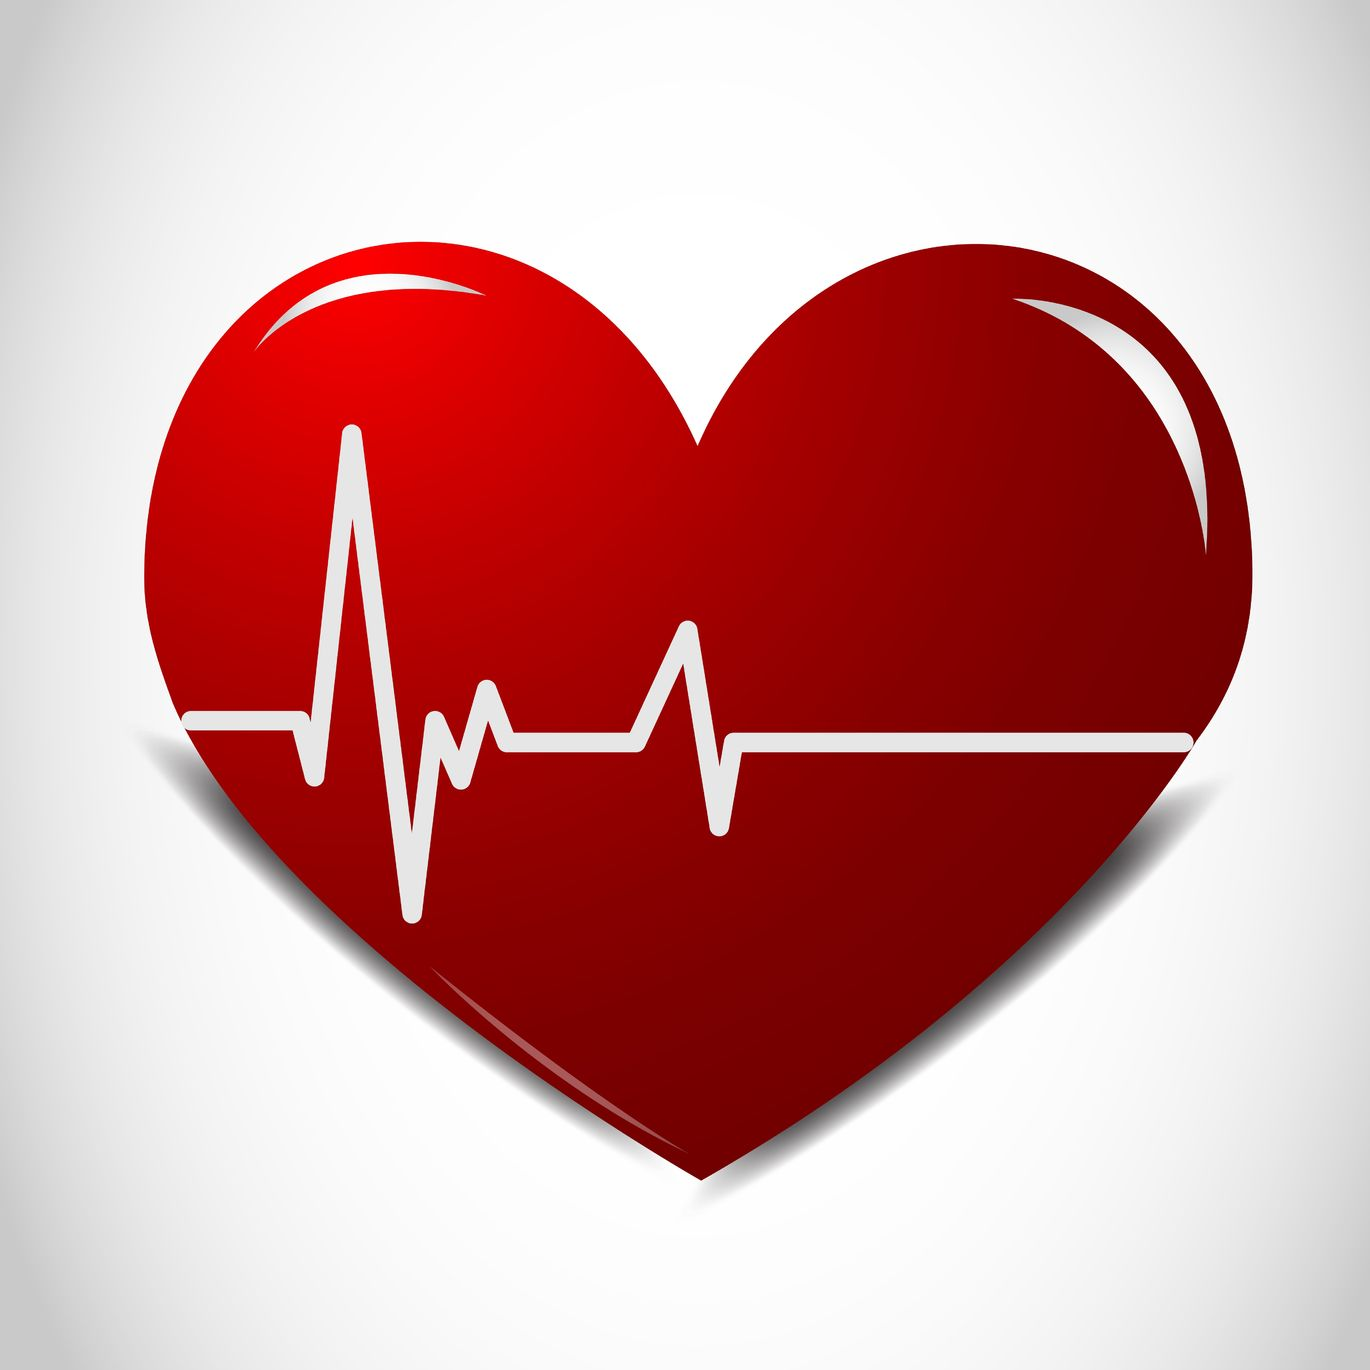 Line clipart heart rate #14